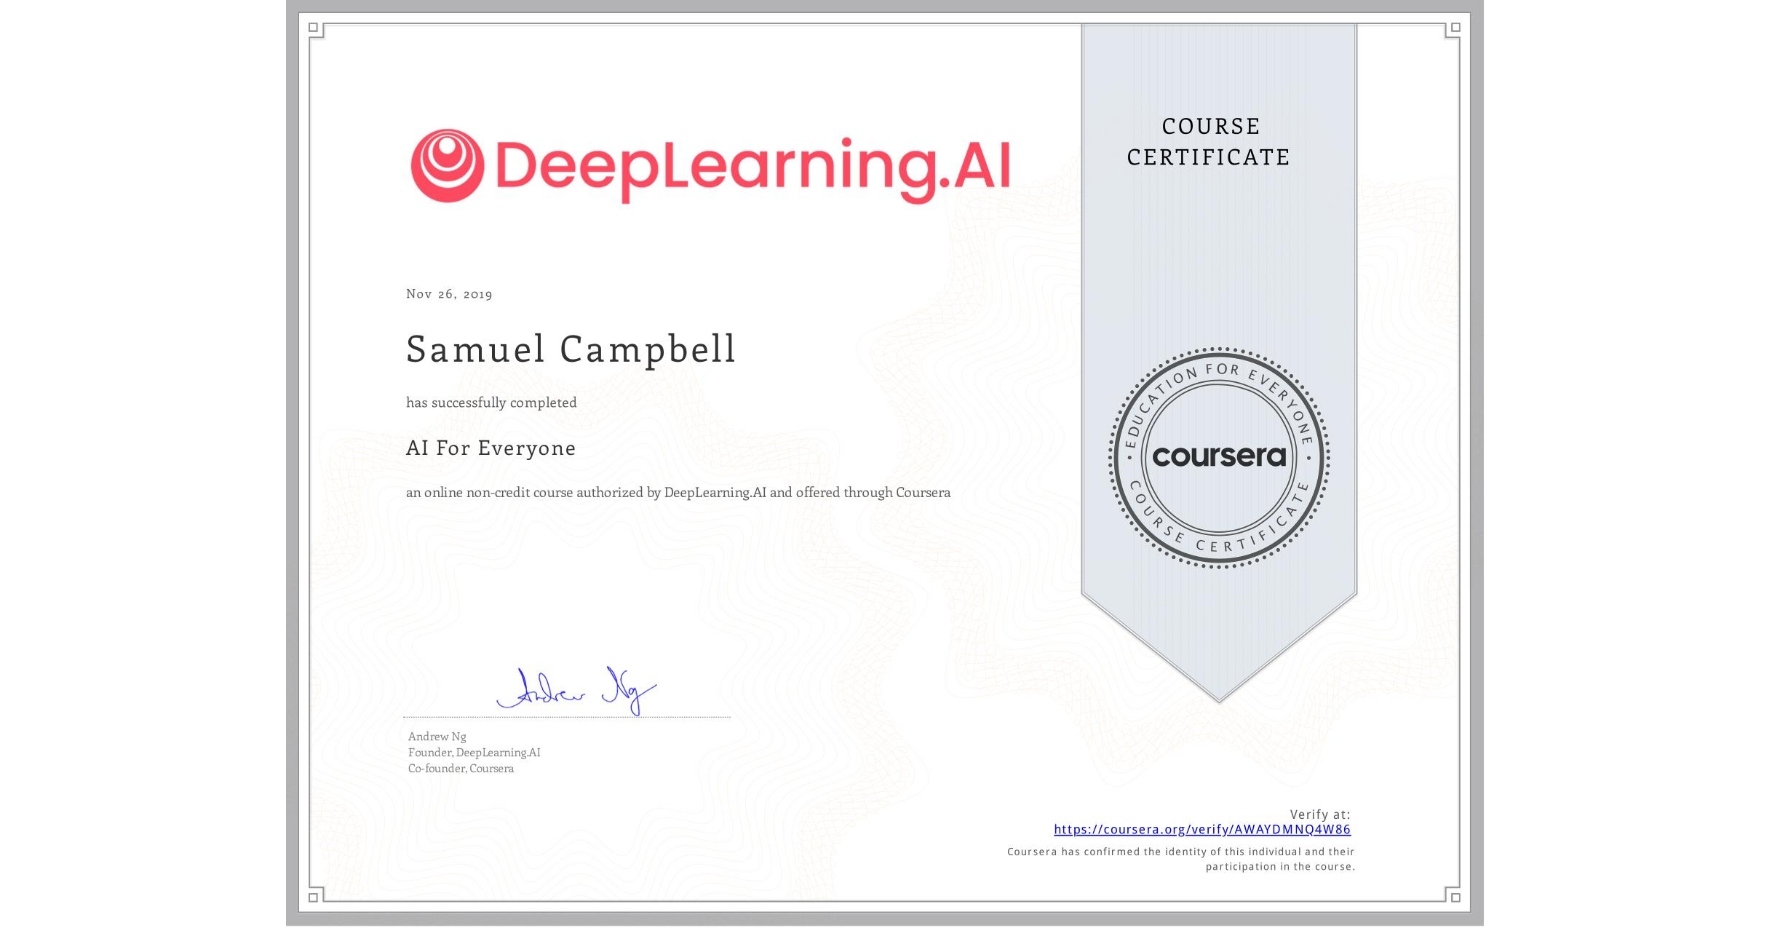 View certificate for Samuel Campbell , AI For Everyone, an online non-credit course authorized by DeepLearning.AI and offered through Coursera